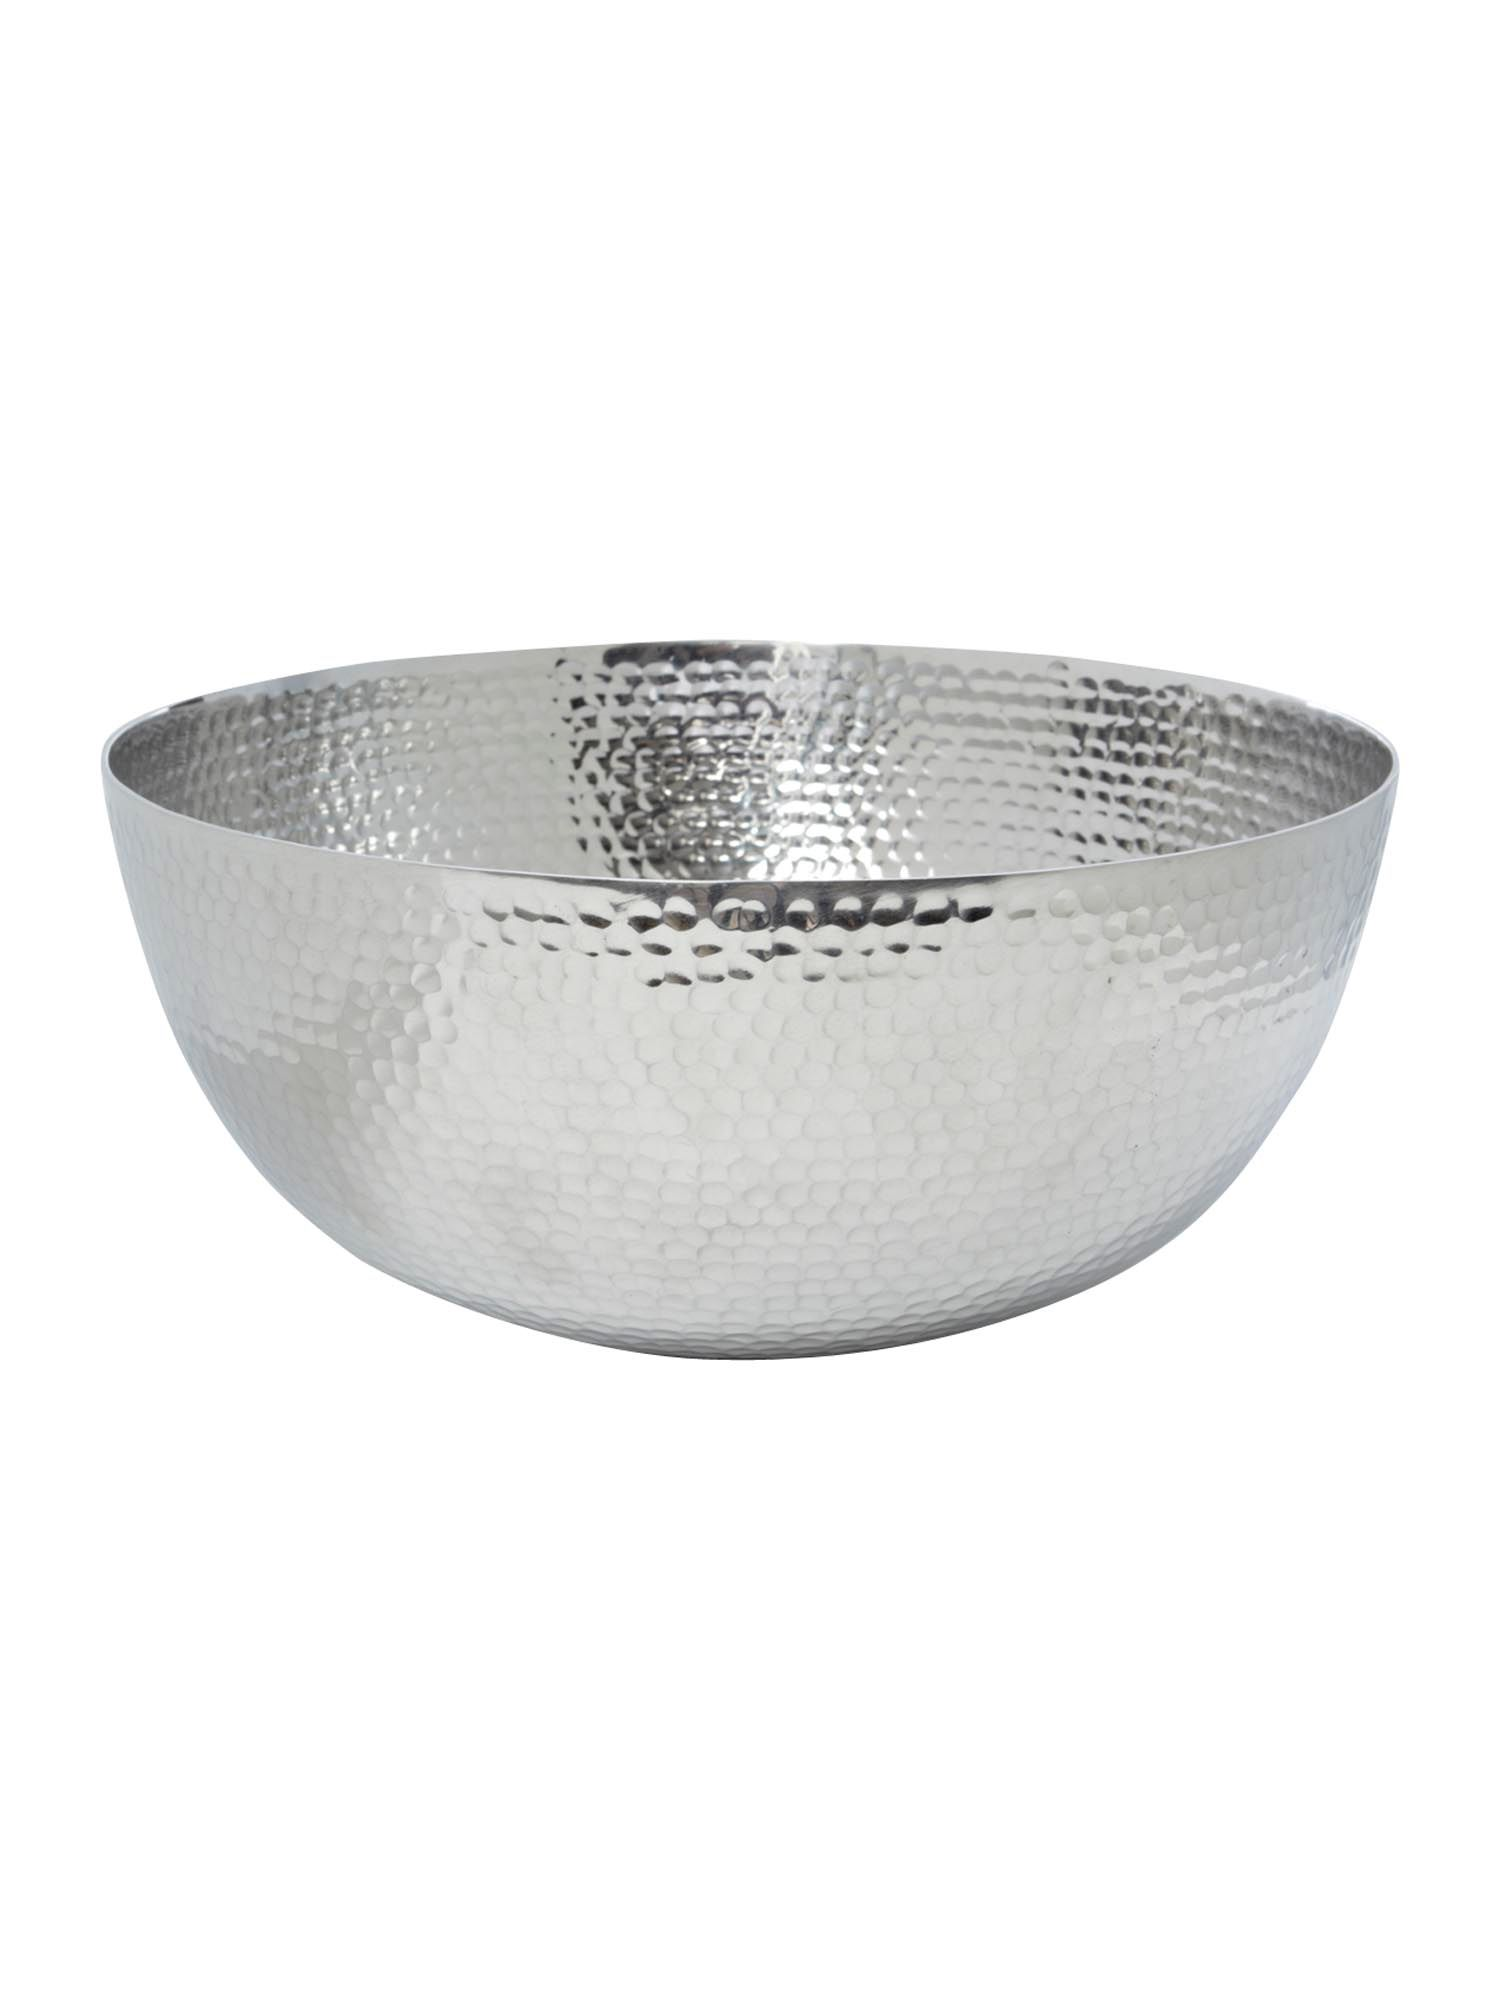 Beaten metal salad bowl